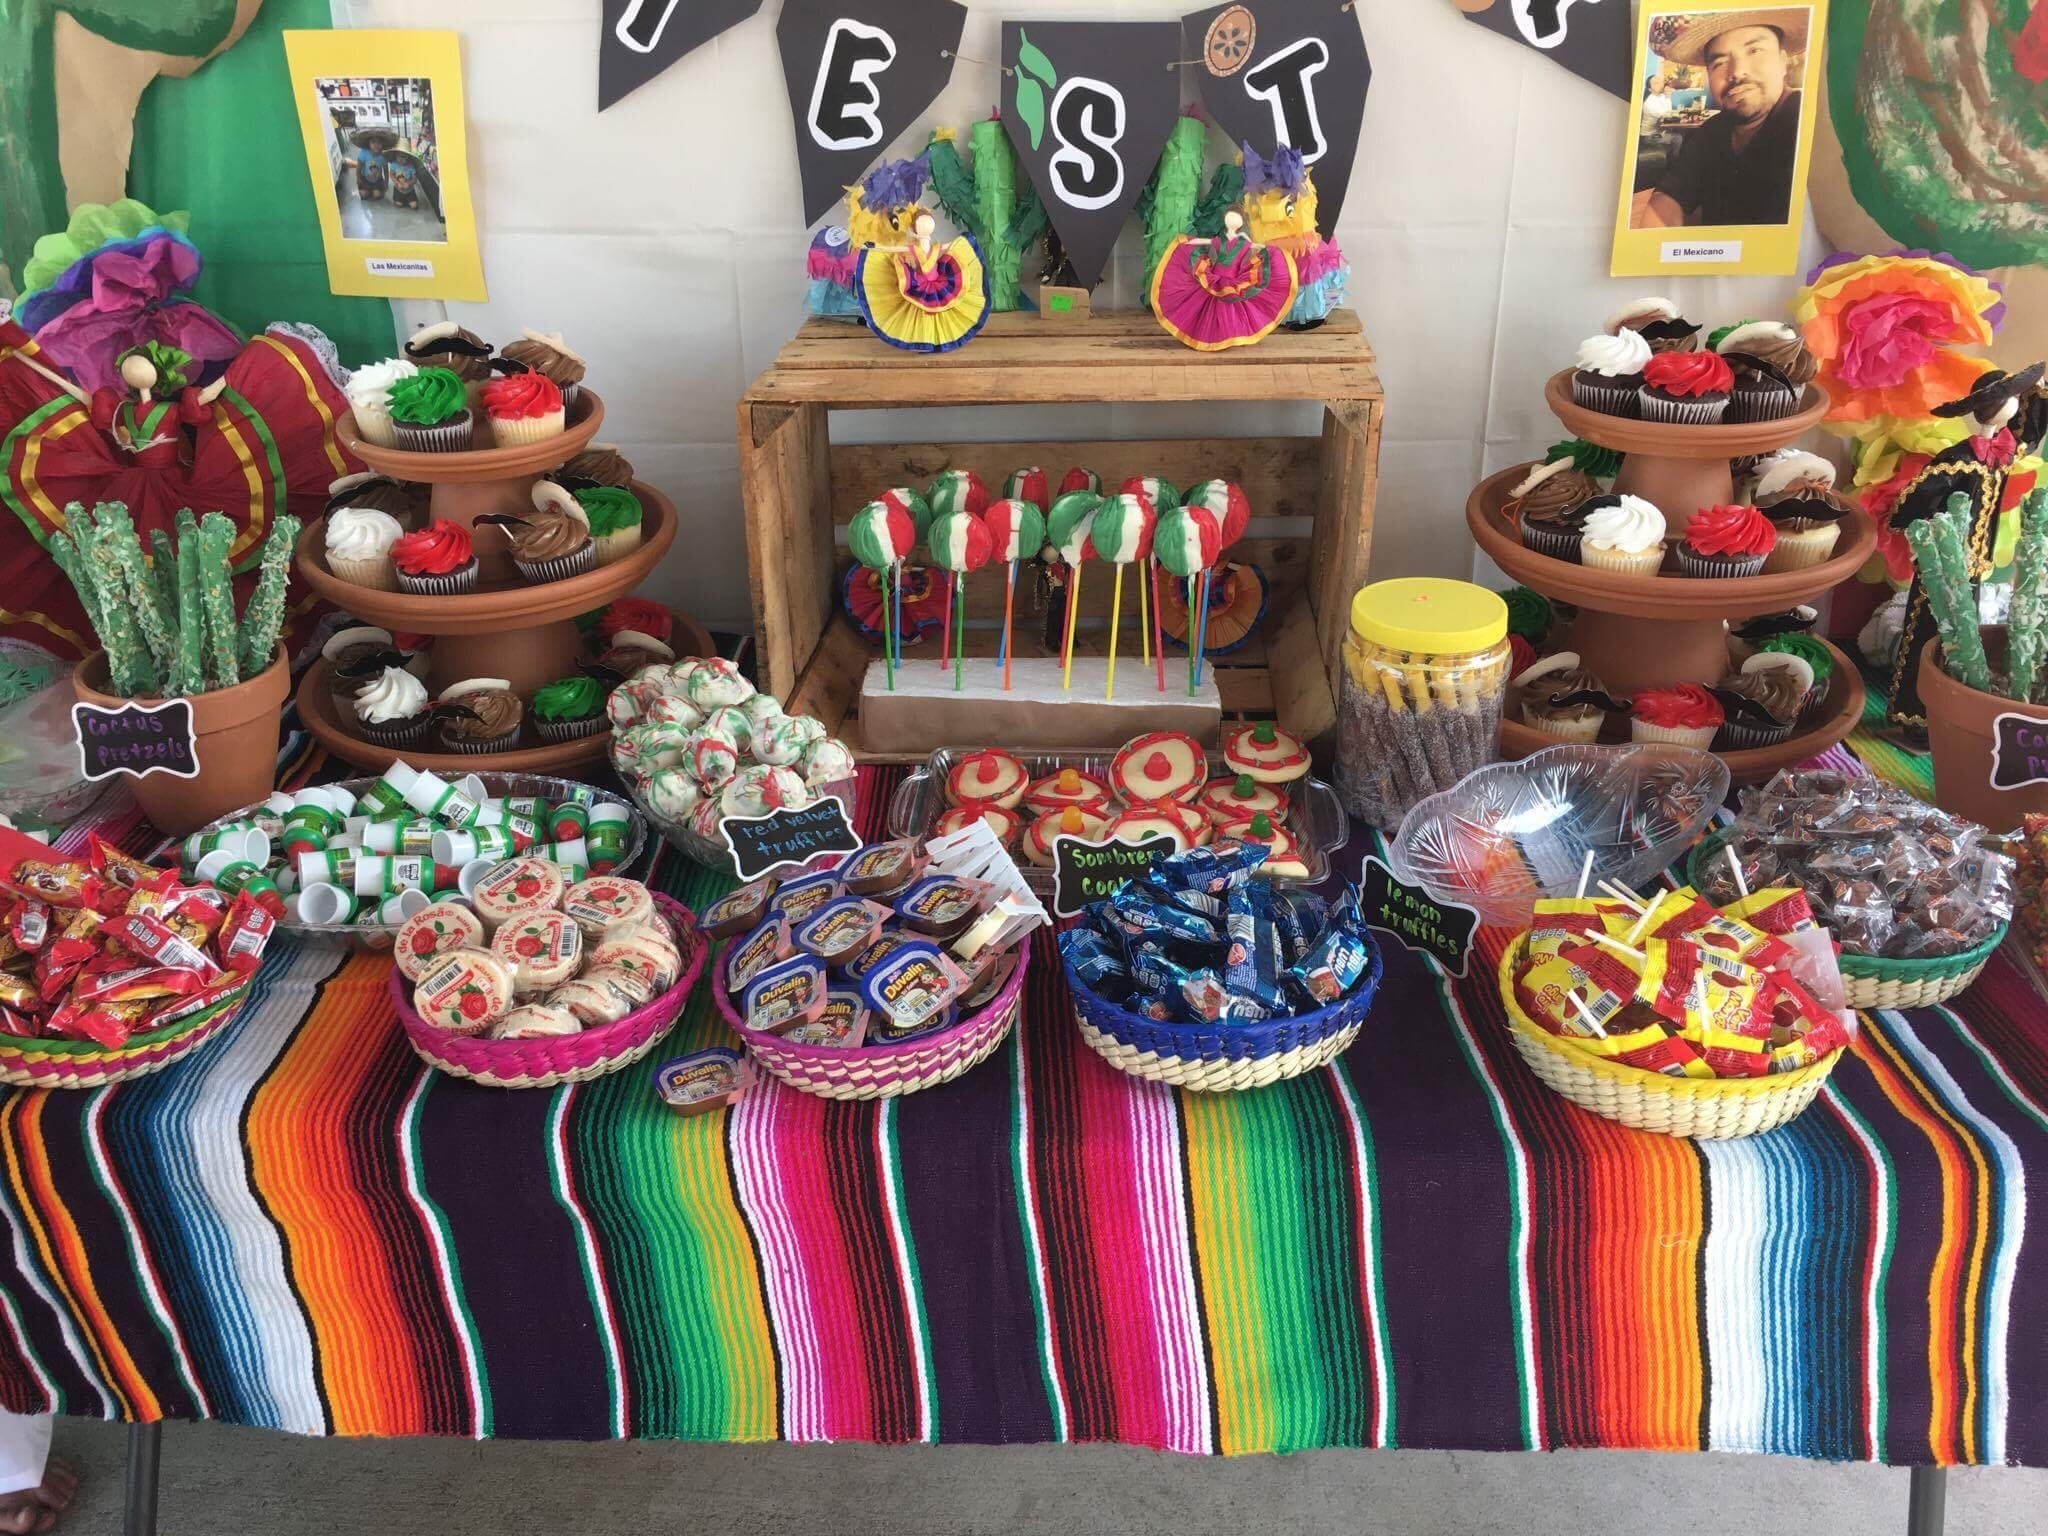 Pin By Andrea Barajas On Mexican Theme Party Mexican Party Theme Mexican Theme Party Decorations Mexican Birthday Parties